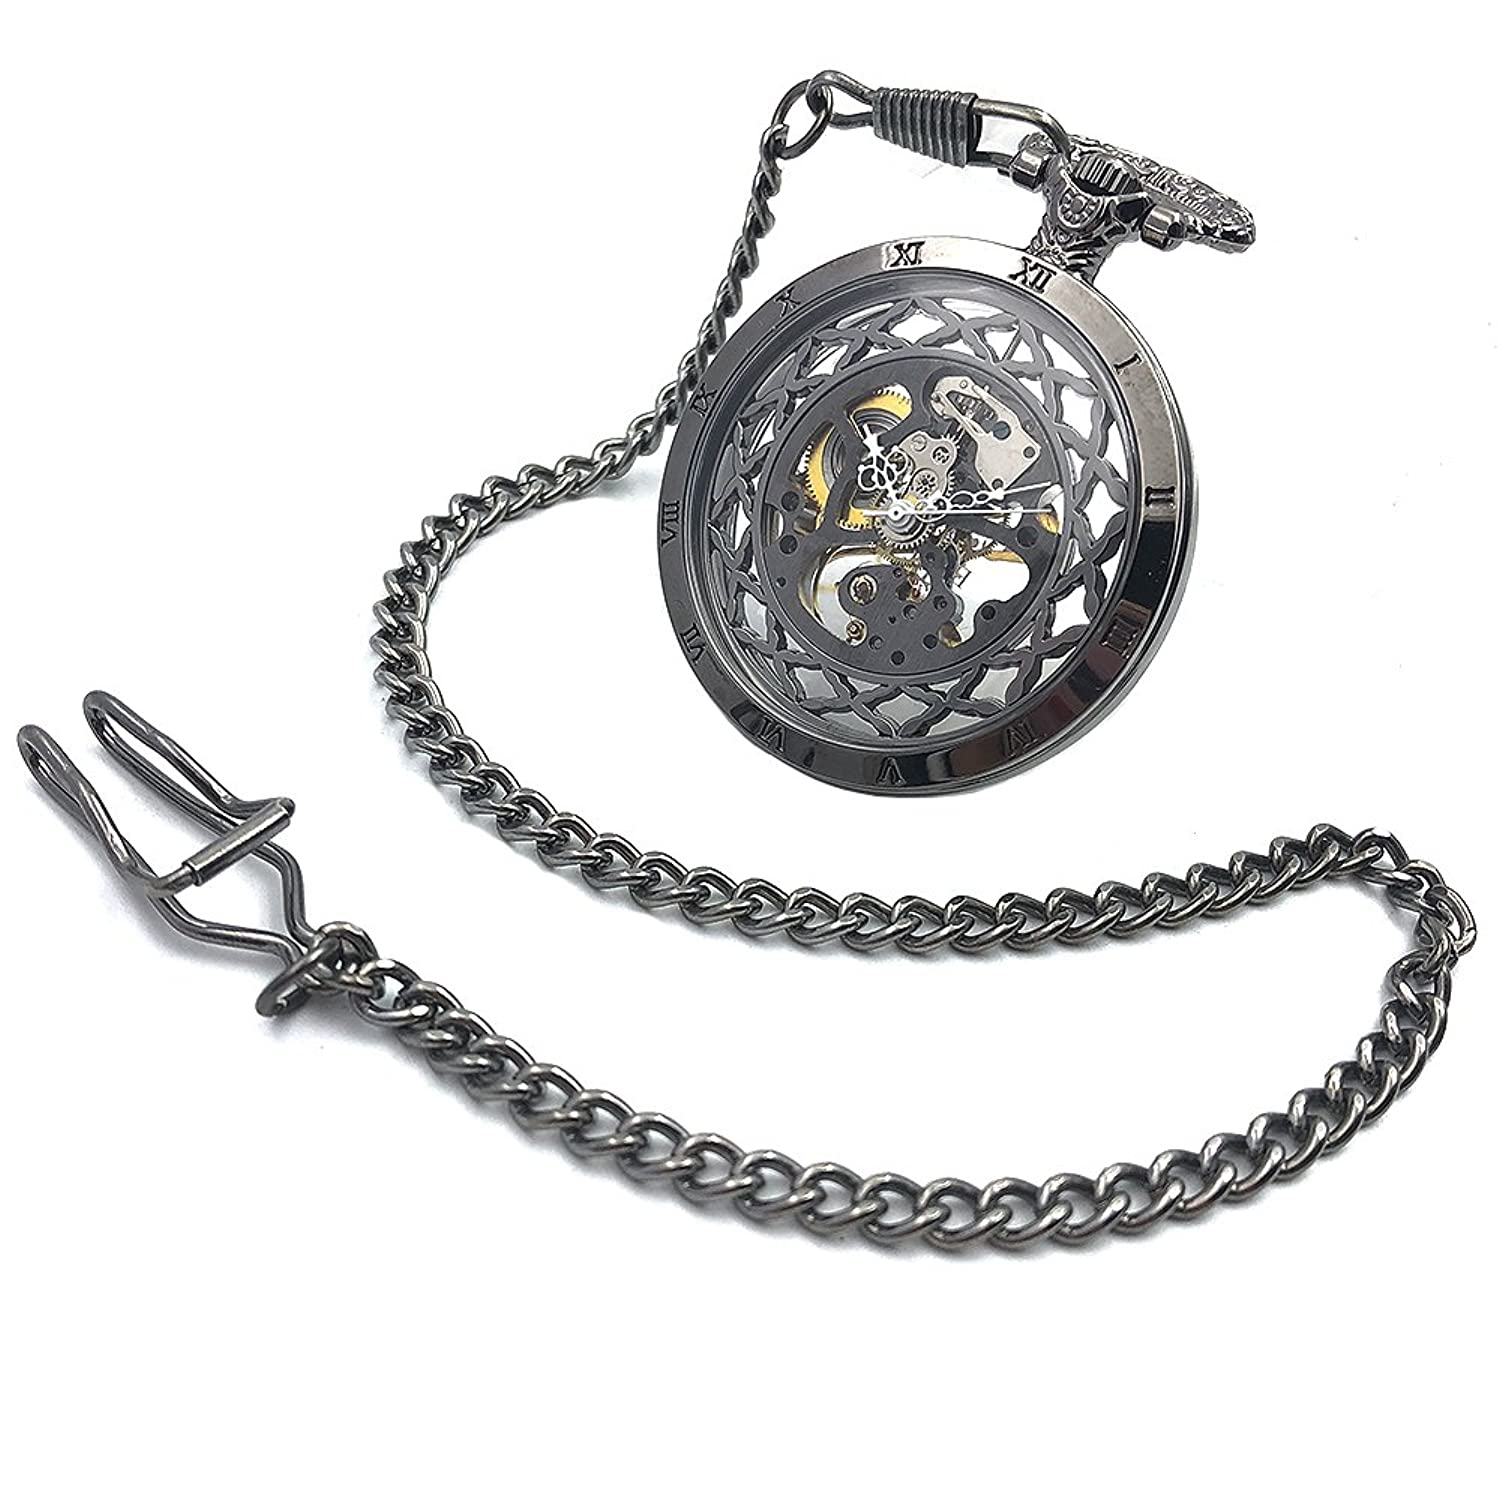 Amazon.com: CAIFU Brand New Arrival Open Face Black Case Skeleton Steampunk Hand Wind Mens Pocket Watch W/Chain Reloj De Bolsillo: Watches